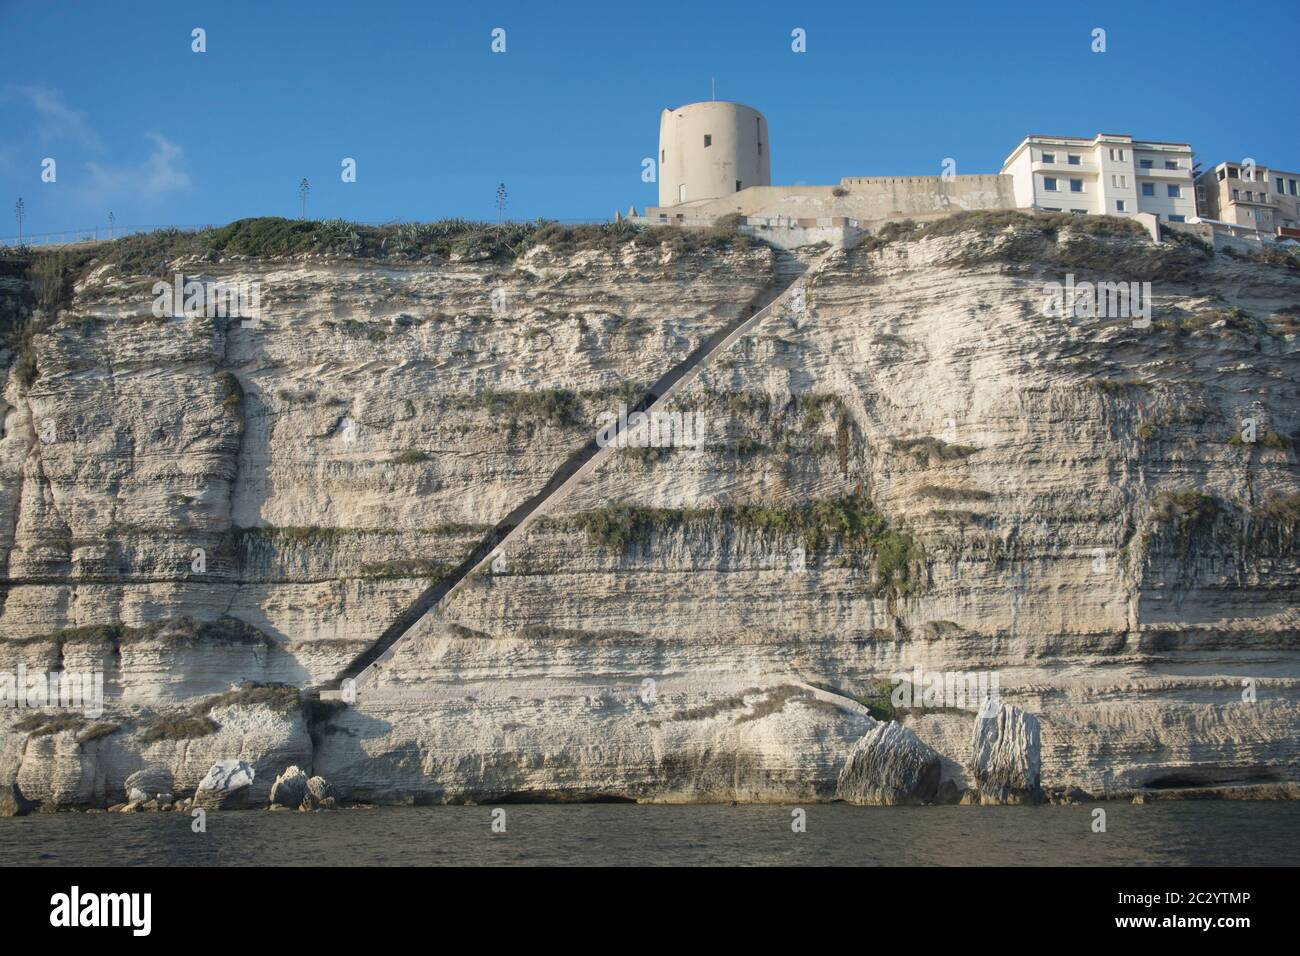 """The Staircase of The King of Aragon (In french: """"Escalier du Roi d'Aragon""""), a famous stony staircase in the commune of Bonifacio, Corsica, France Stock Photo"""